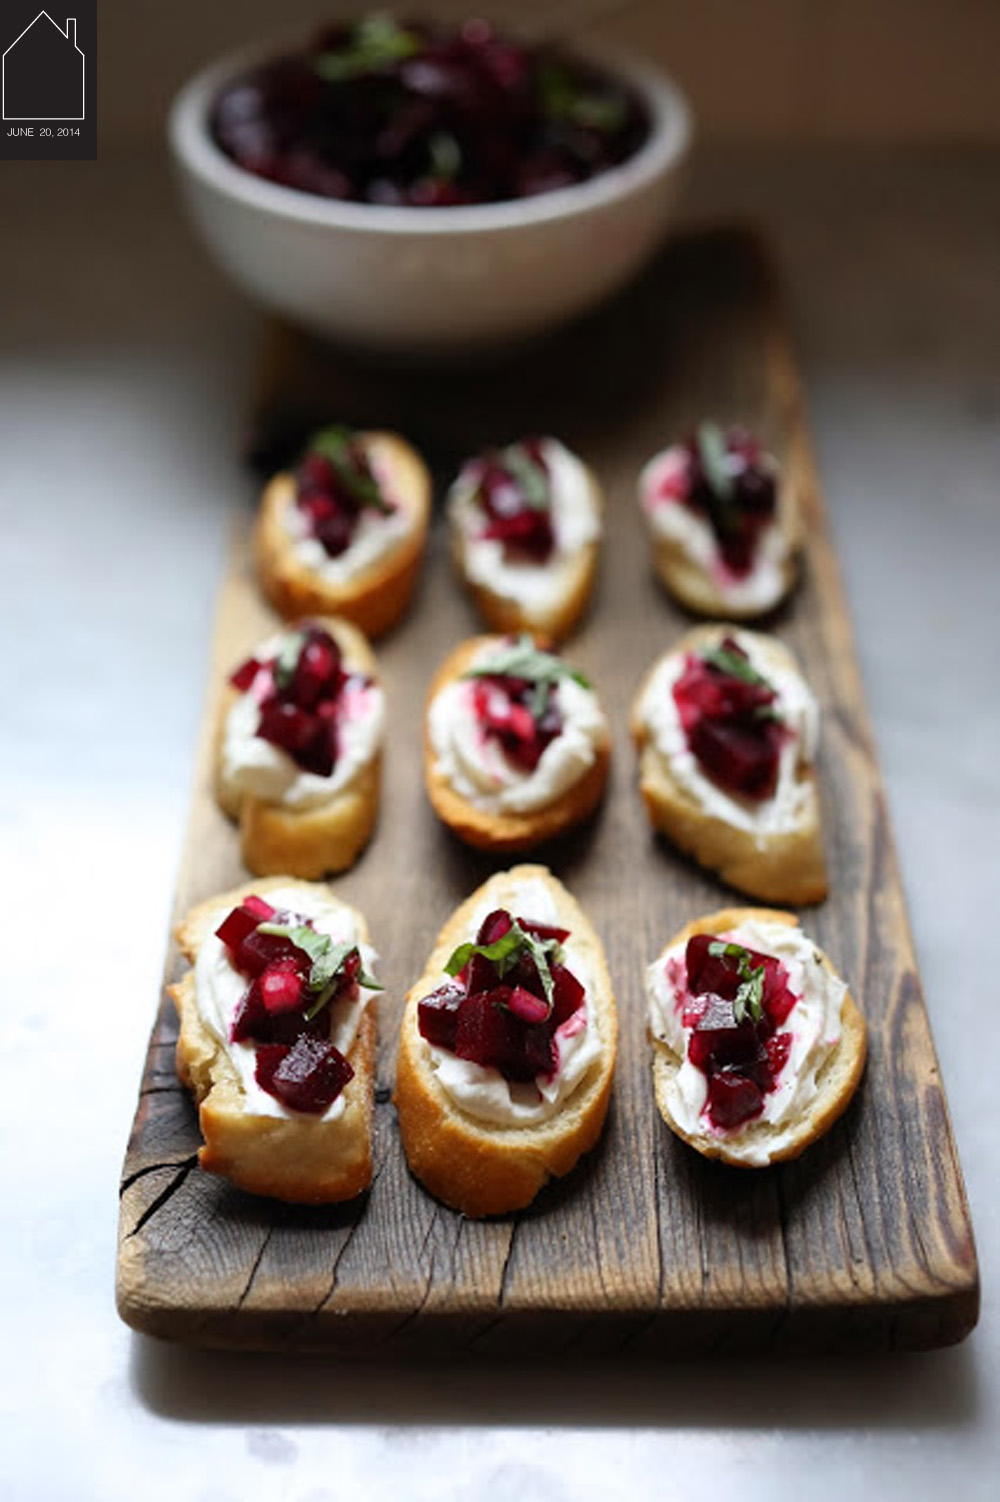 beet bruschetta with goat cheese and basil via FEASTING at HOME